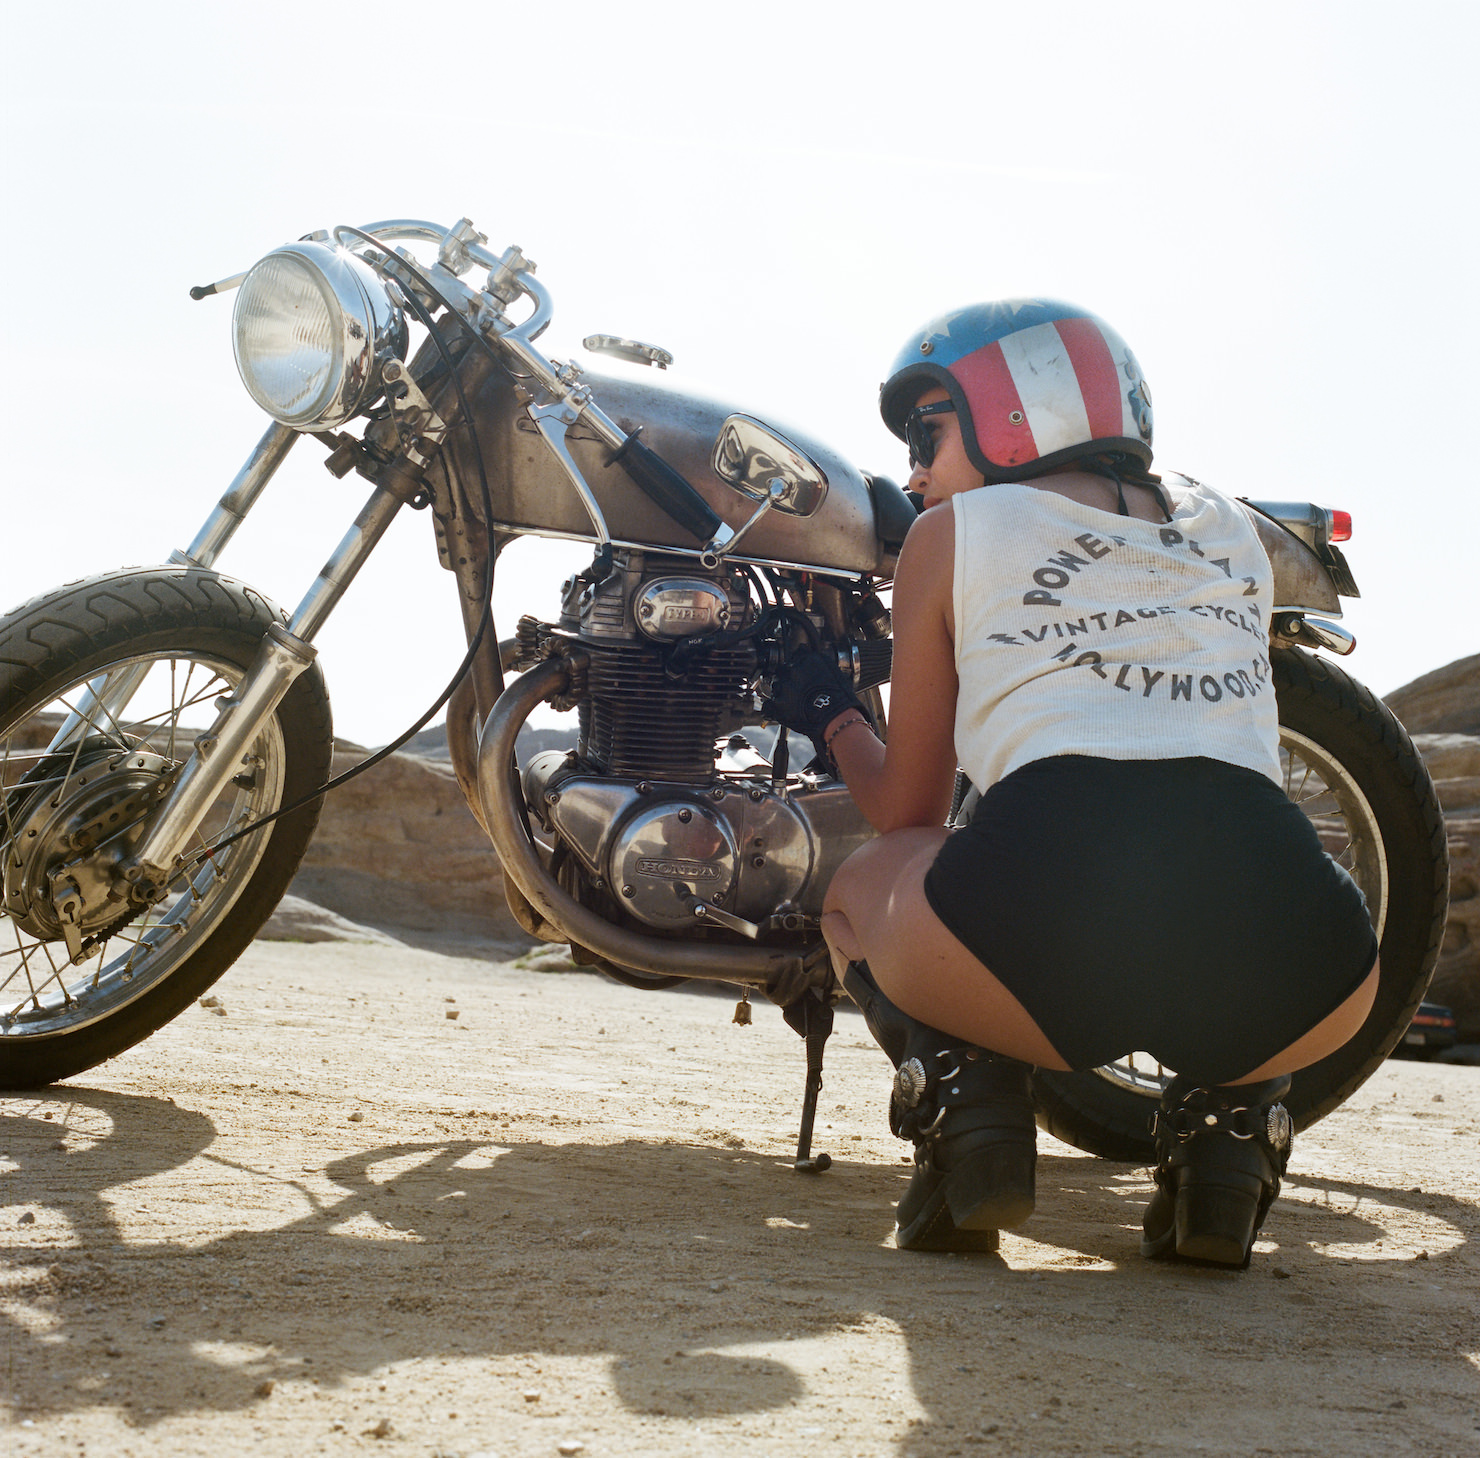 motorcycle exhibition silodrome lanakila womens macnaughton hosting locations website visit contact